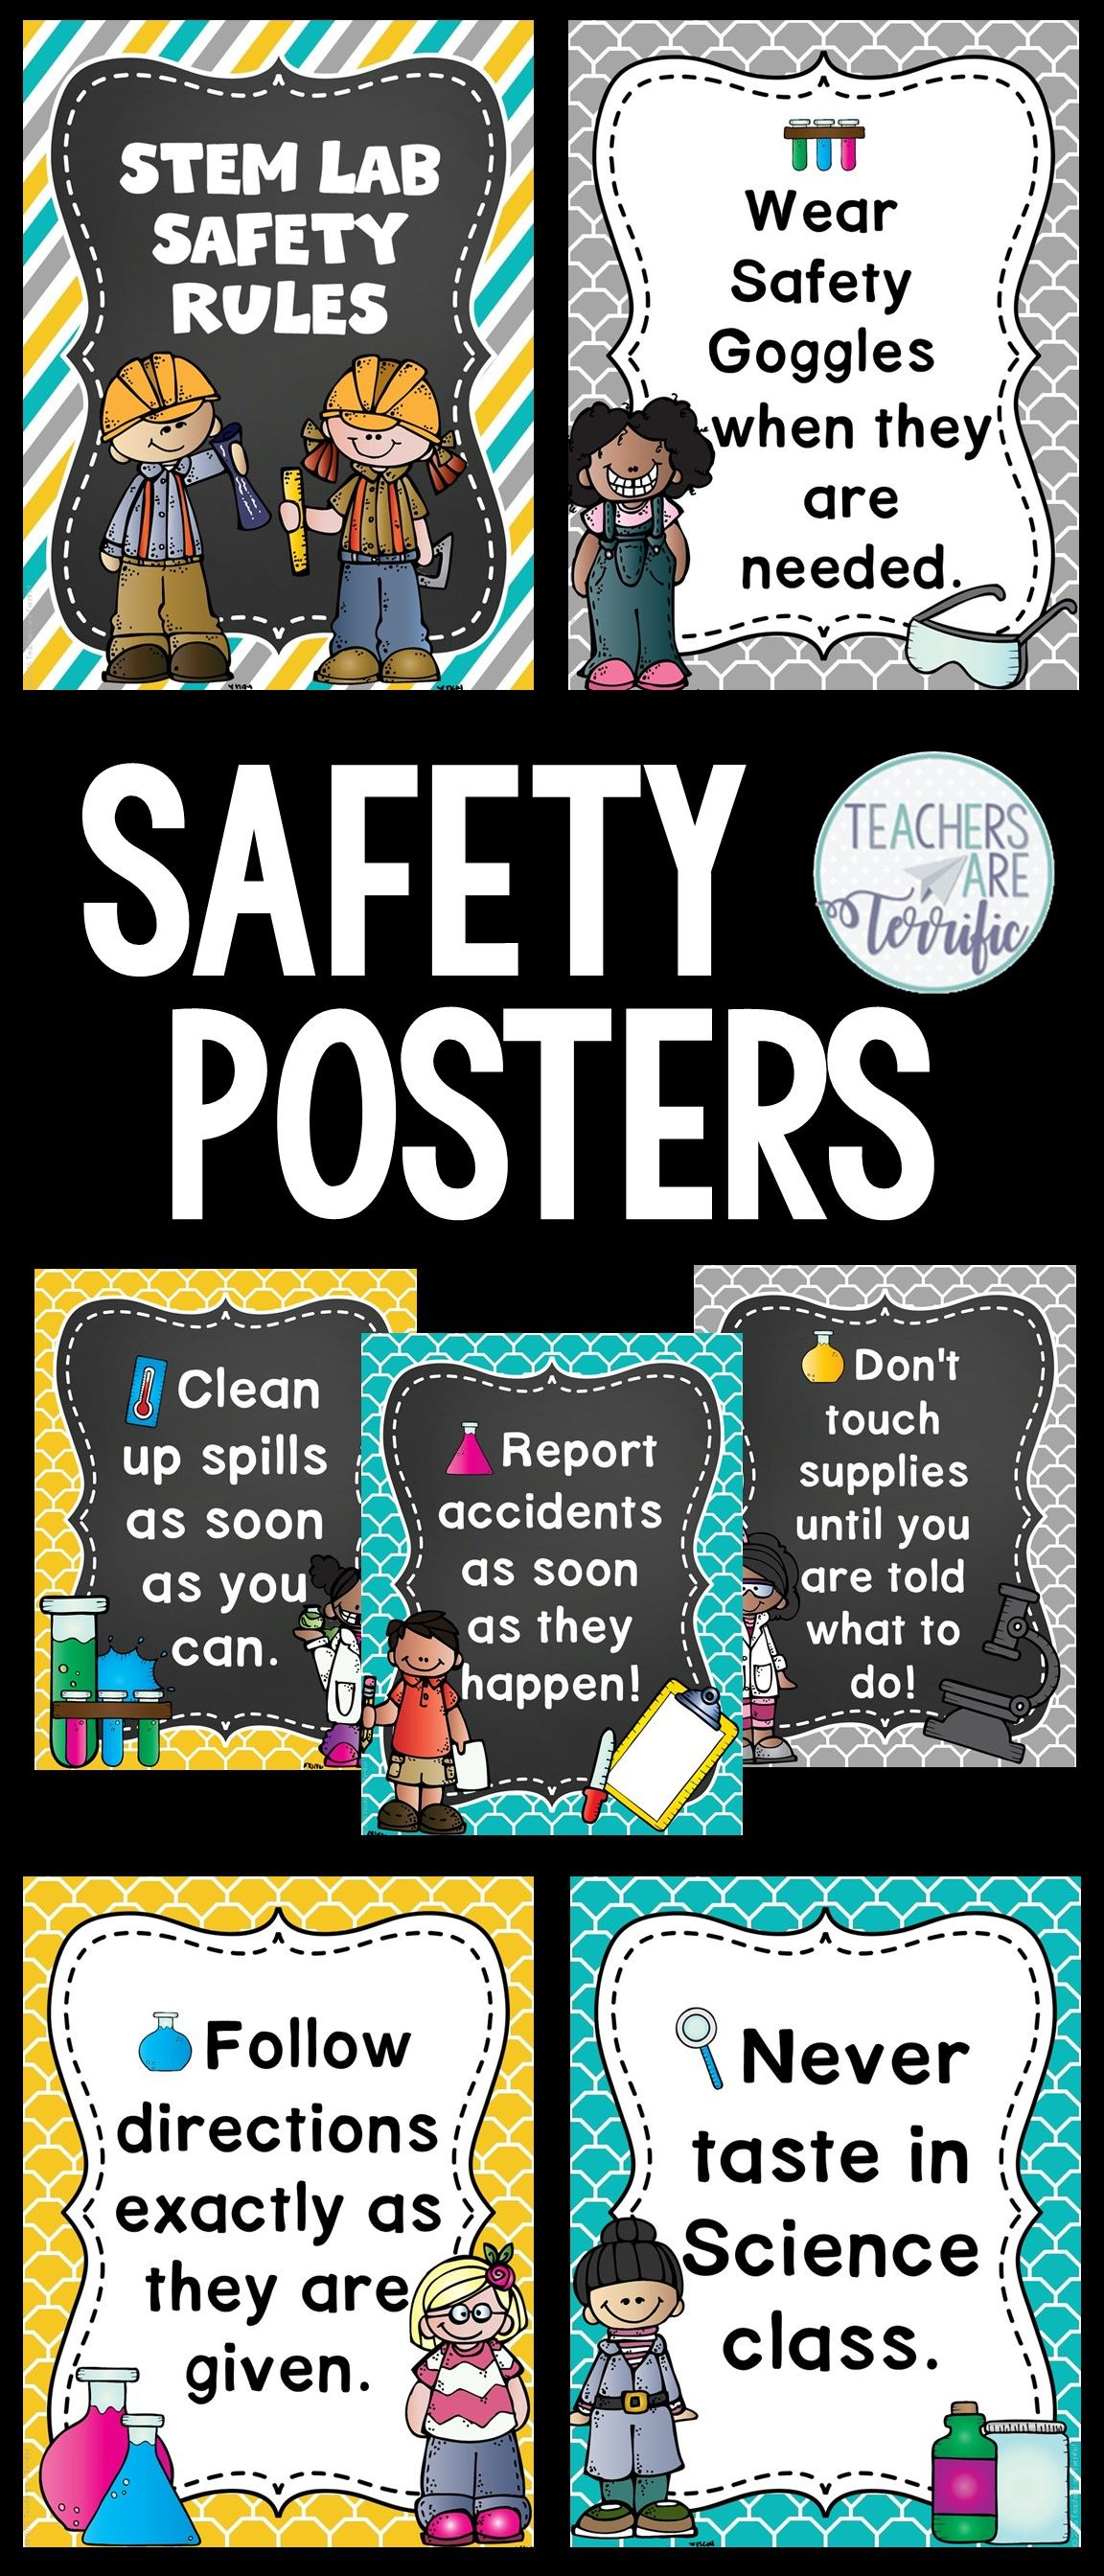 Science Safety Rules Posters In Teal Yellow And Gray